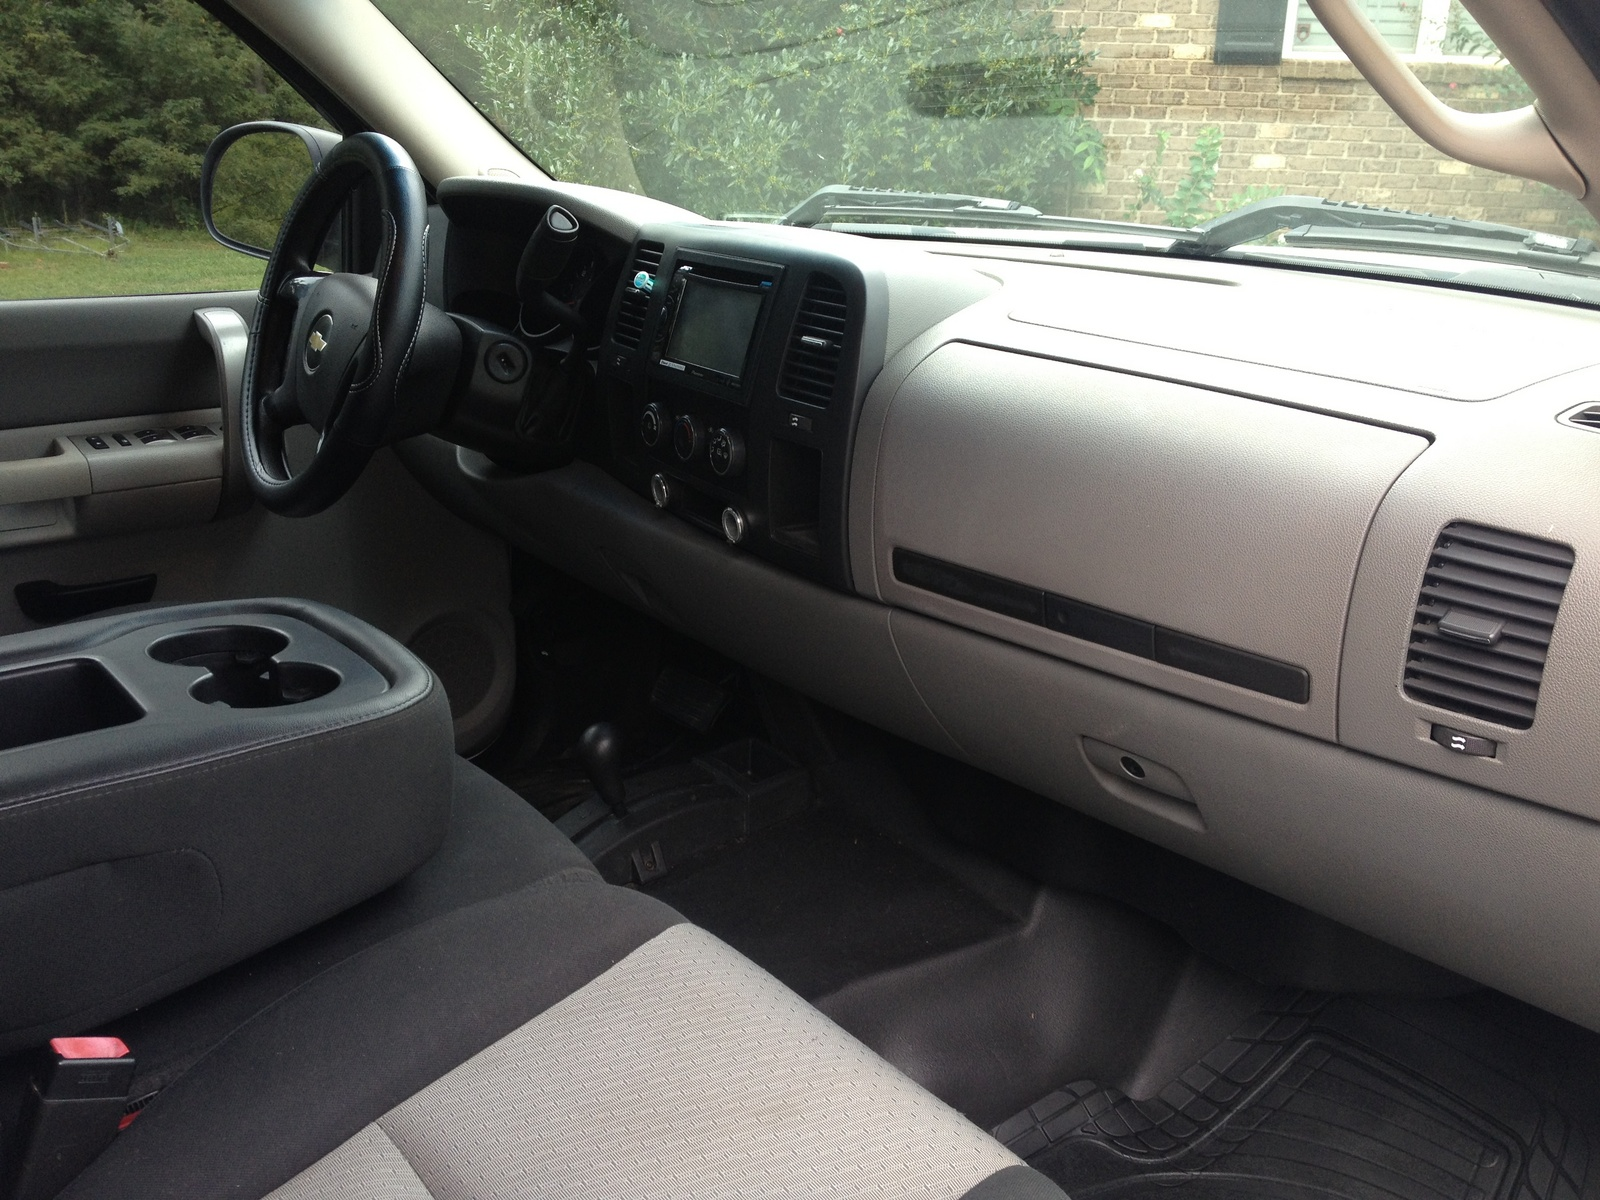 Picture of 2007 Chevrolet Silverado 1500 LT1 Ext. Cab 4WD, interior